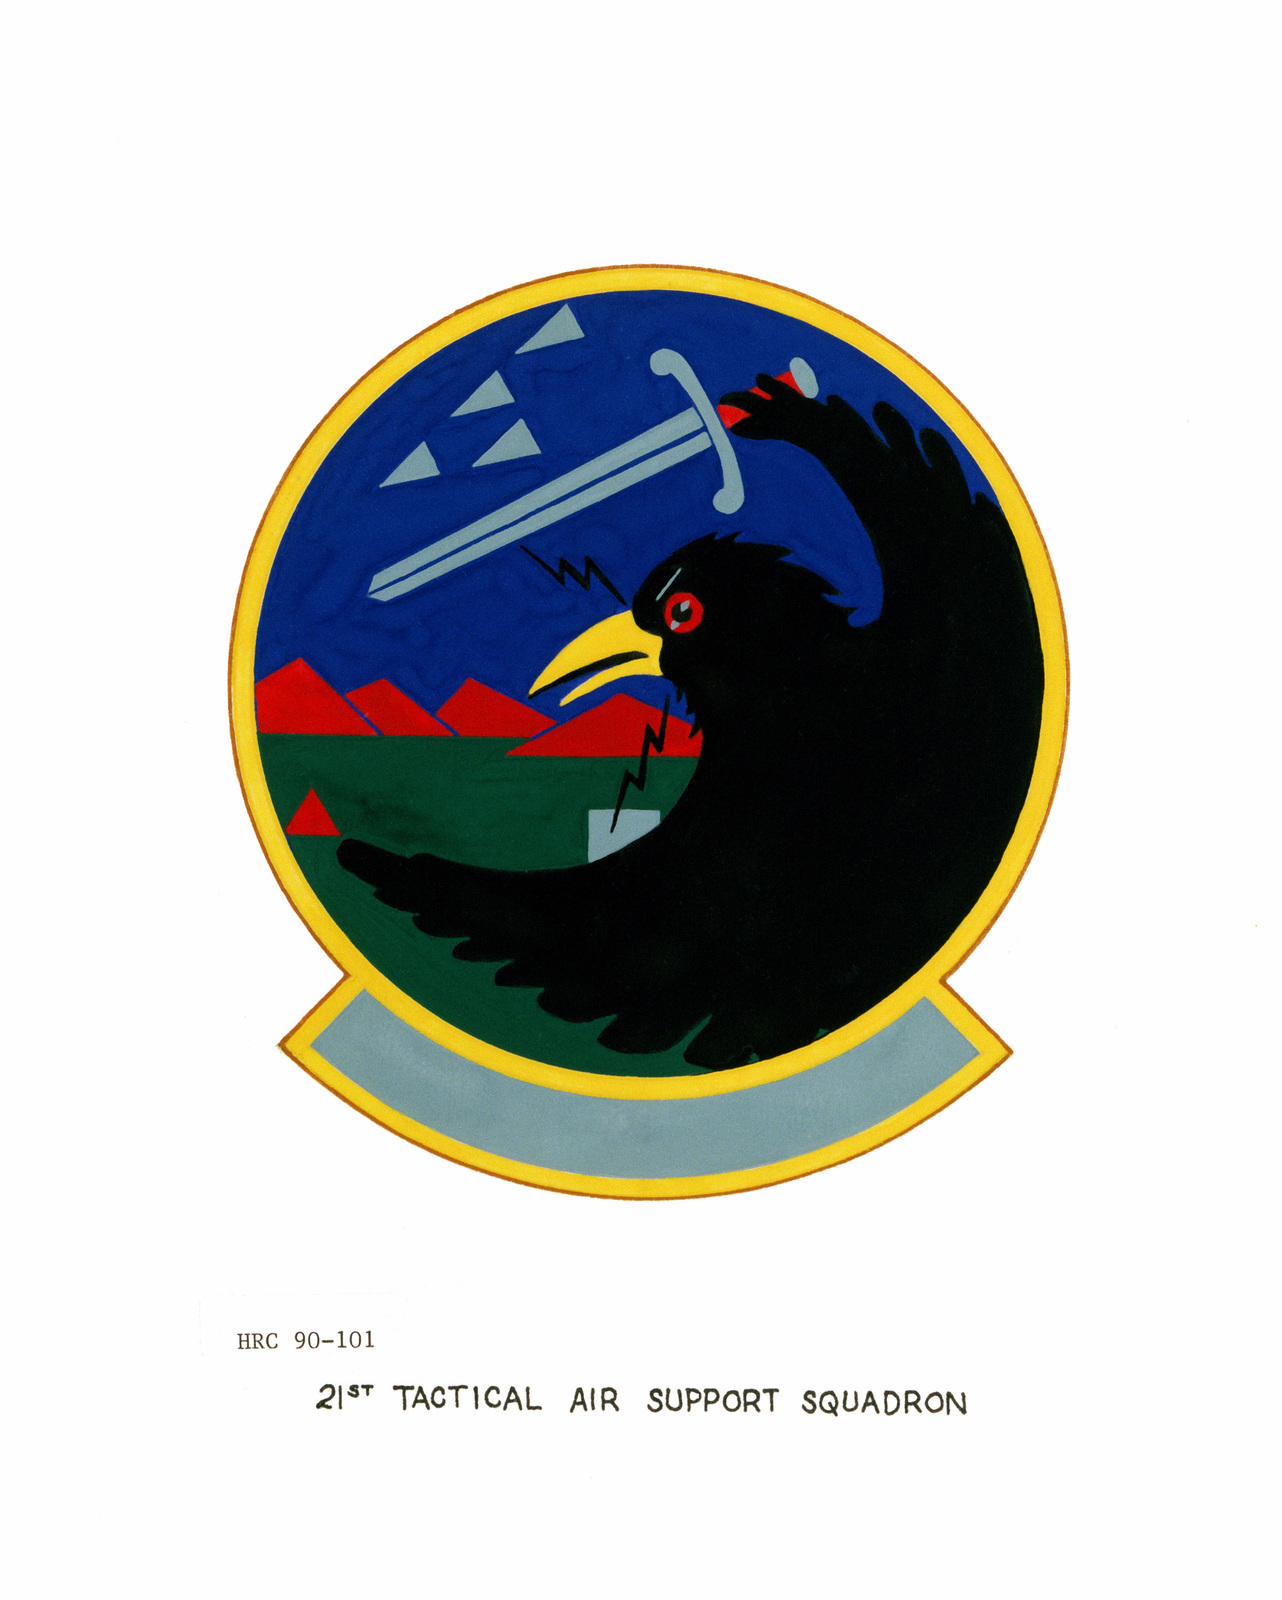 Approved insignia for: 21st Tactical Air Support Squadron